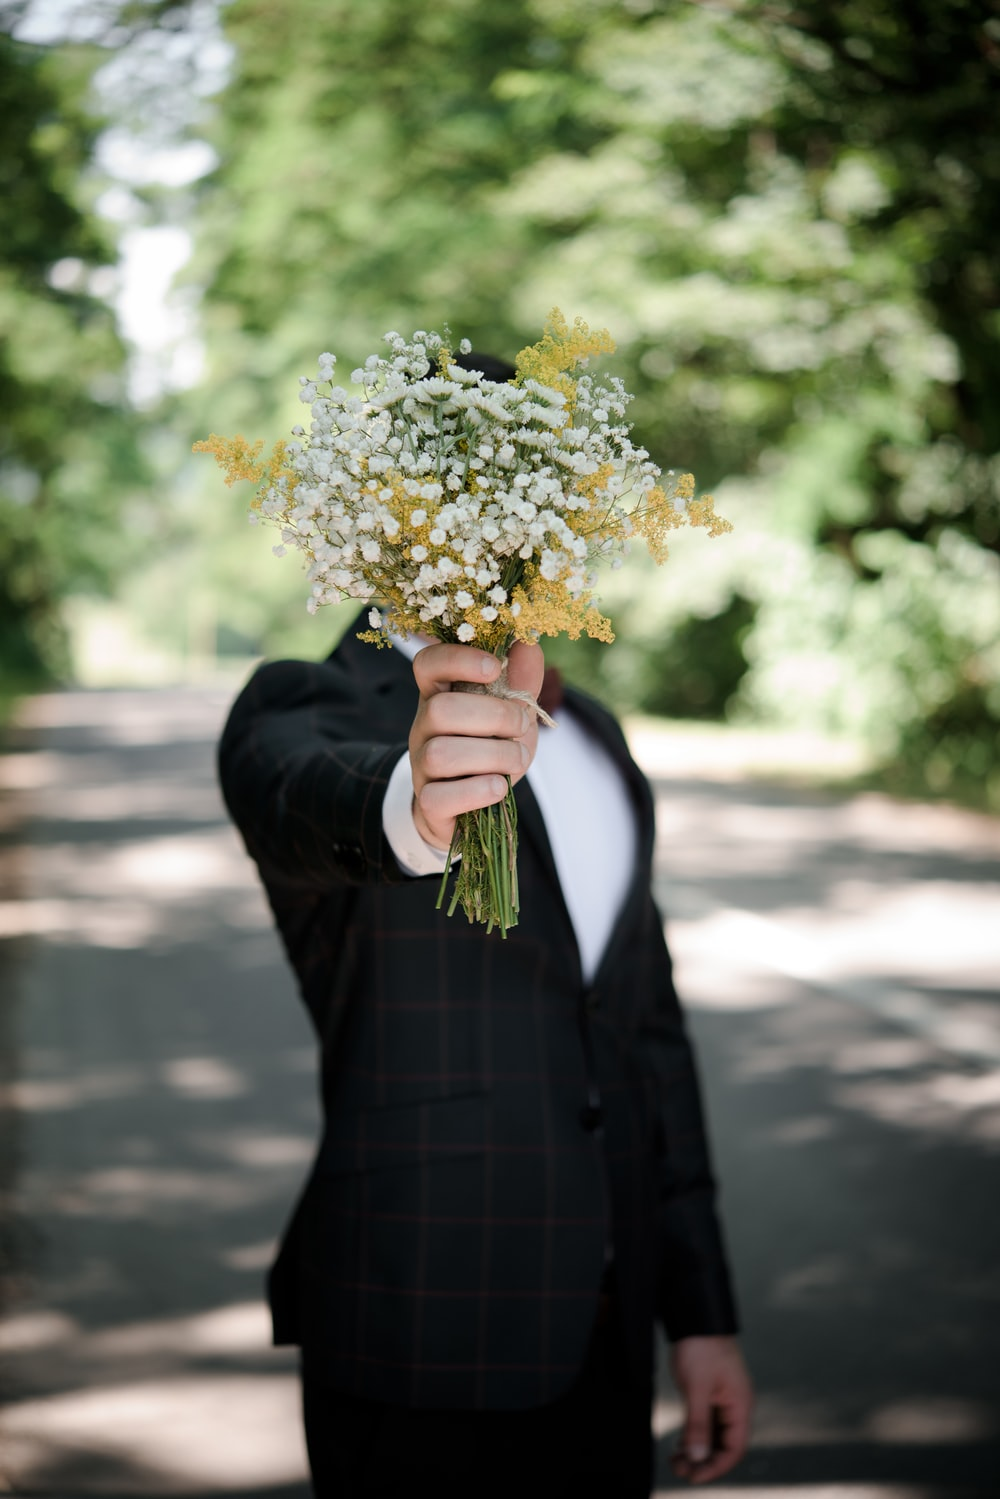 Flowers In Hand 52 Best Free Hand Flower Holding And Hold